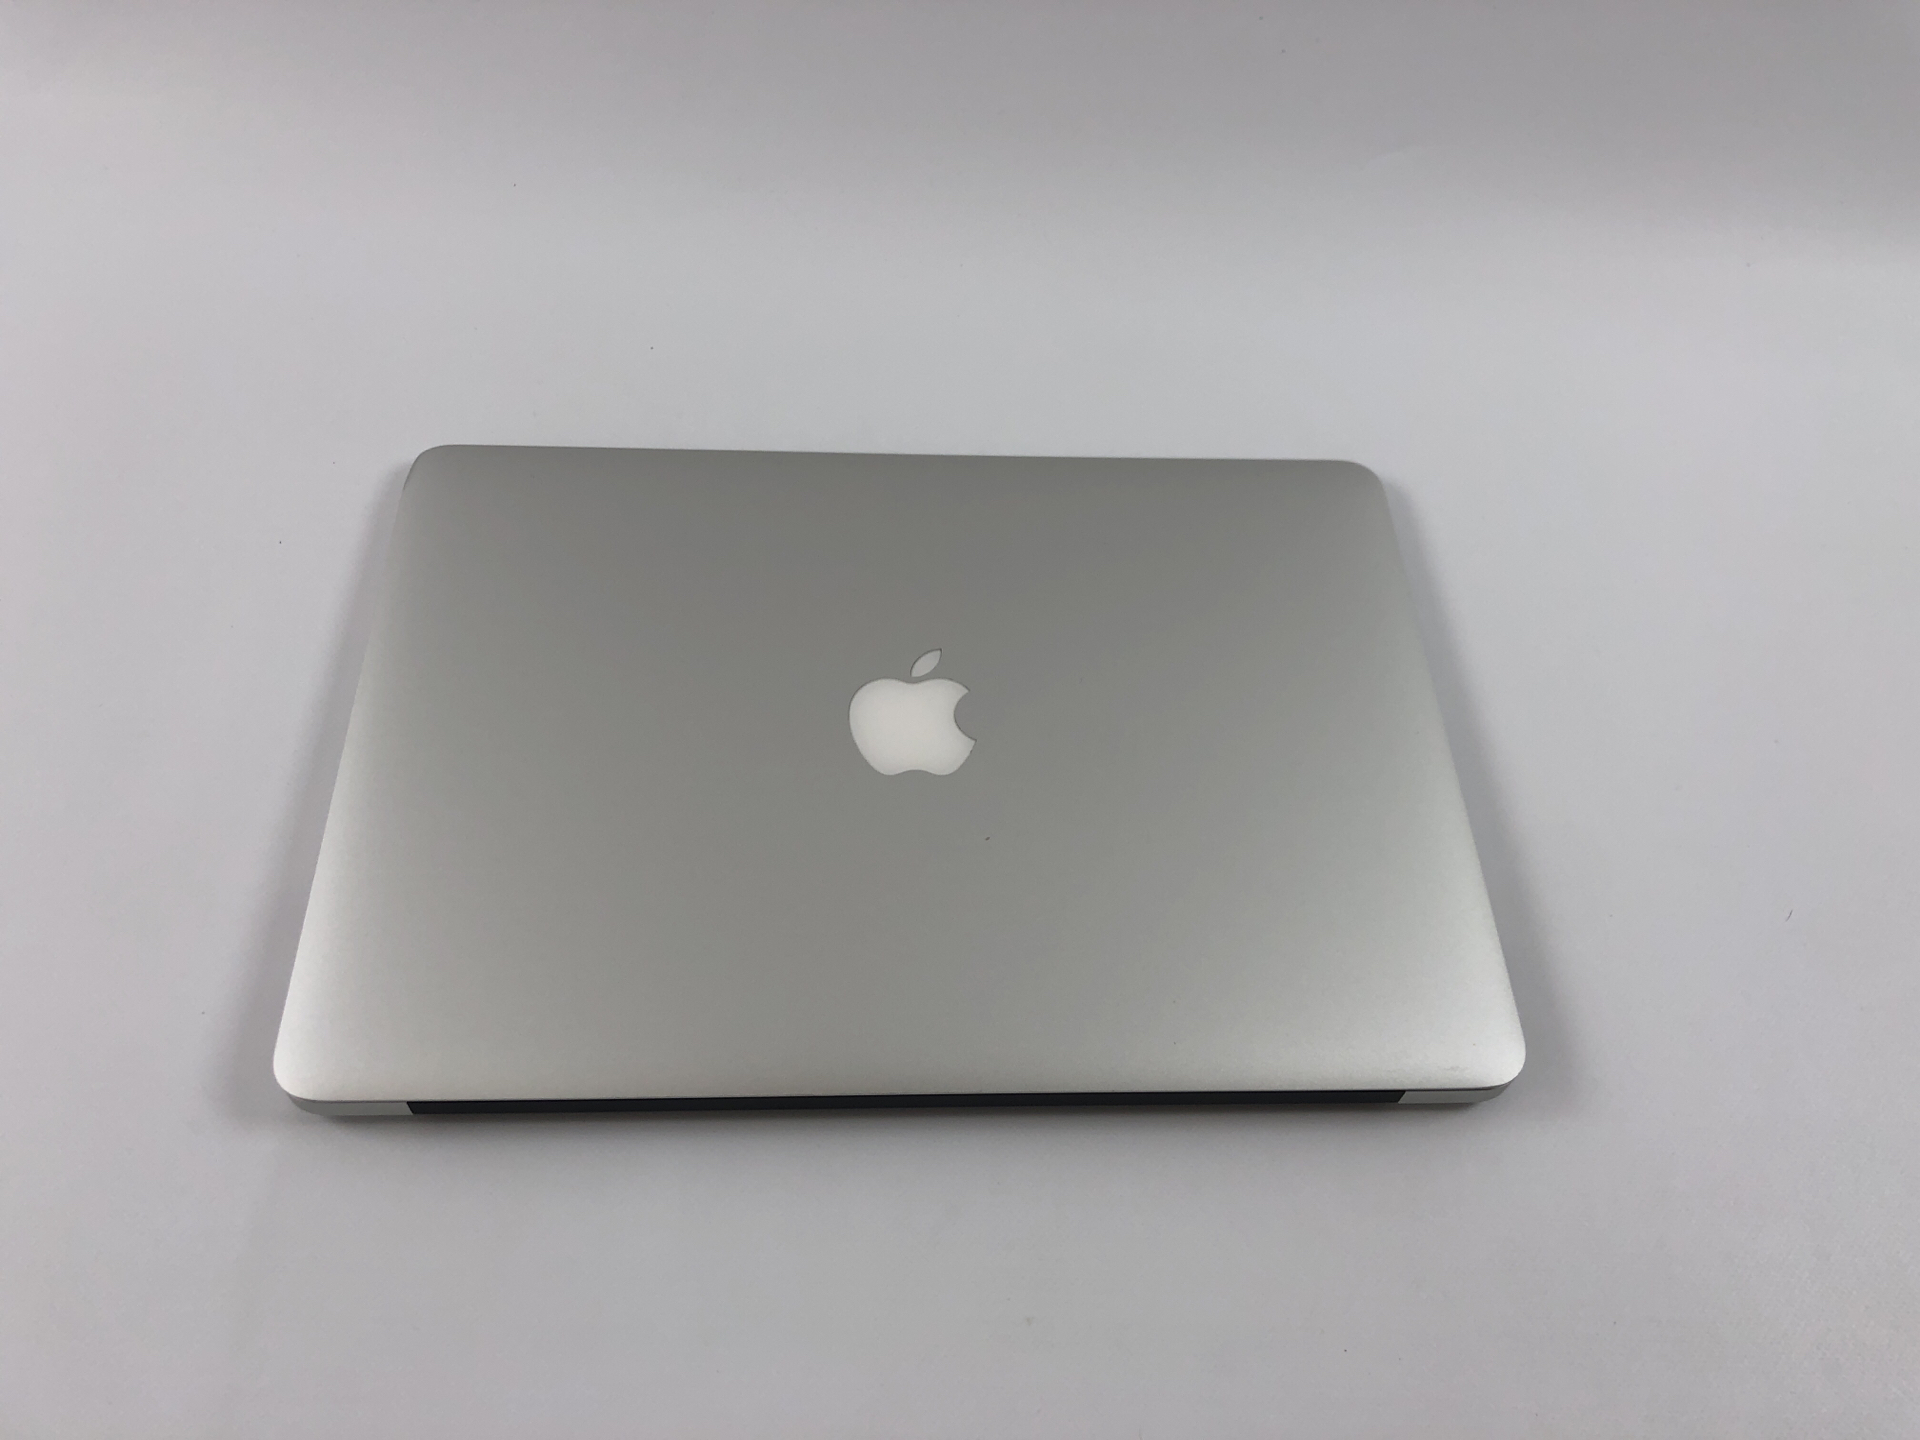 "MacBook Air 13"" Mid 2013 (Intel Core i7 1.7 GHz 8 GB RAM 256 GB SSD), Intel Core i7 1.7 GHz, 8 GB RAM, 256 GB SSD, bild 2"